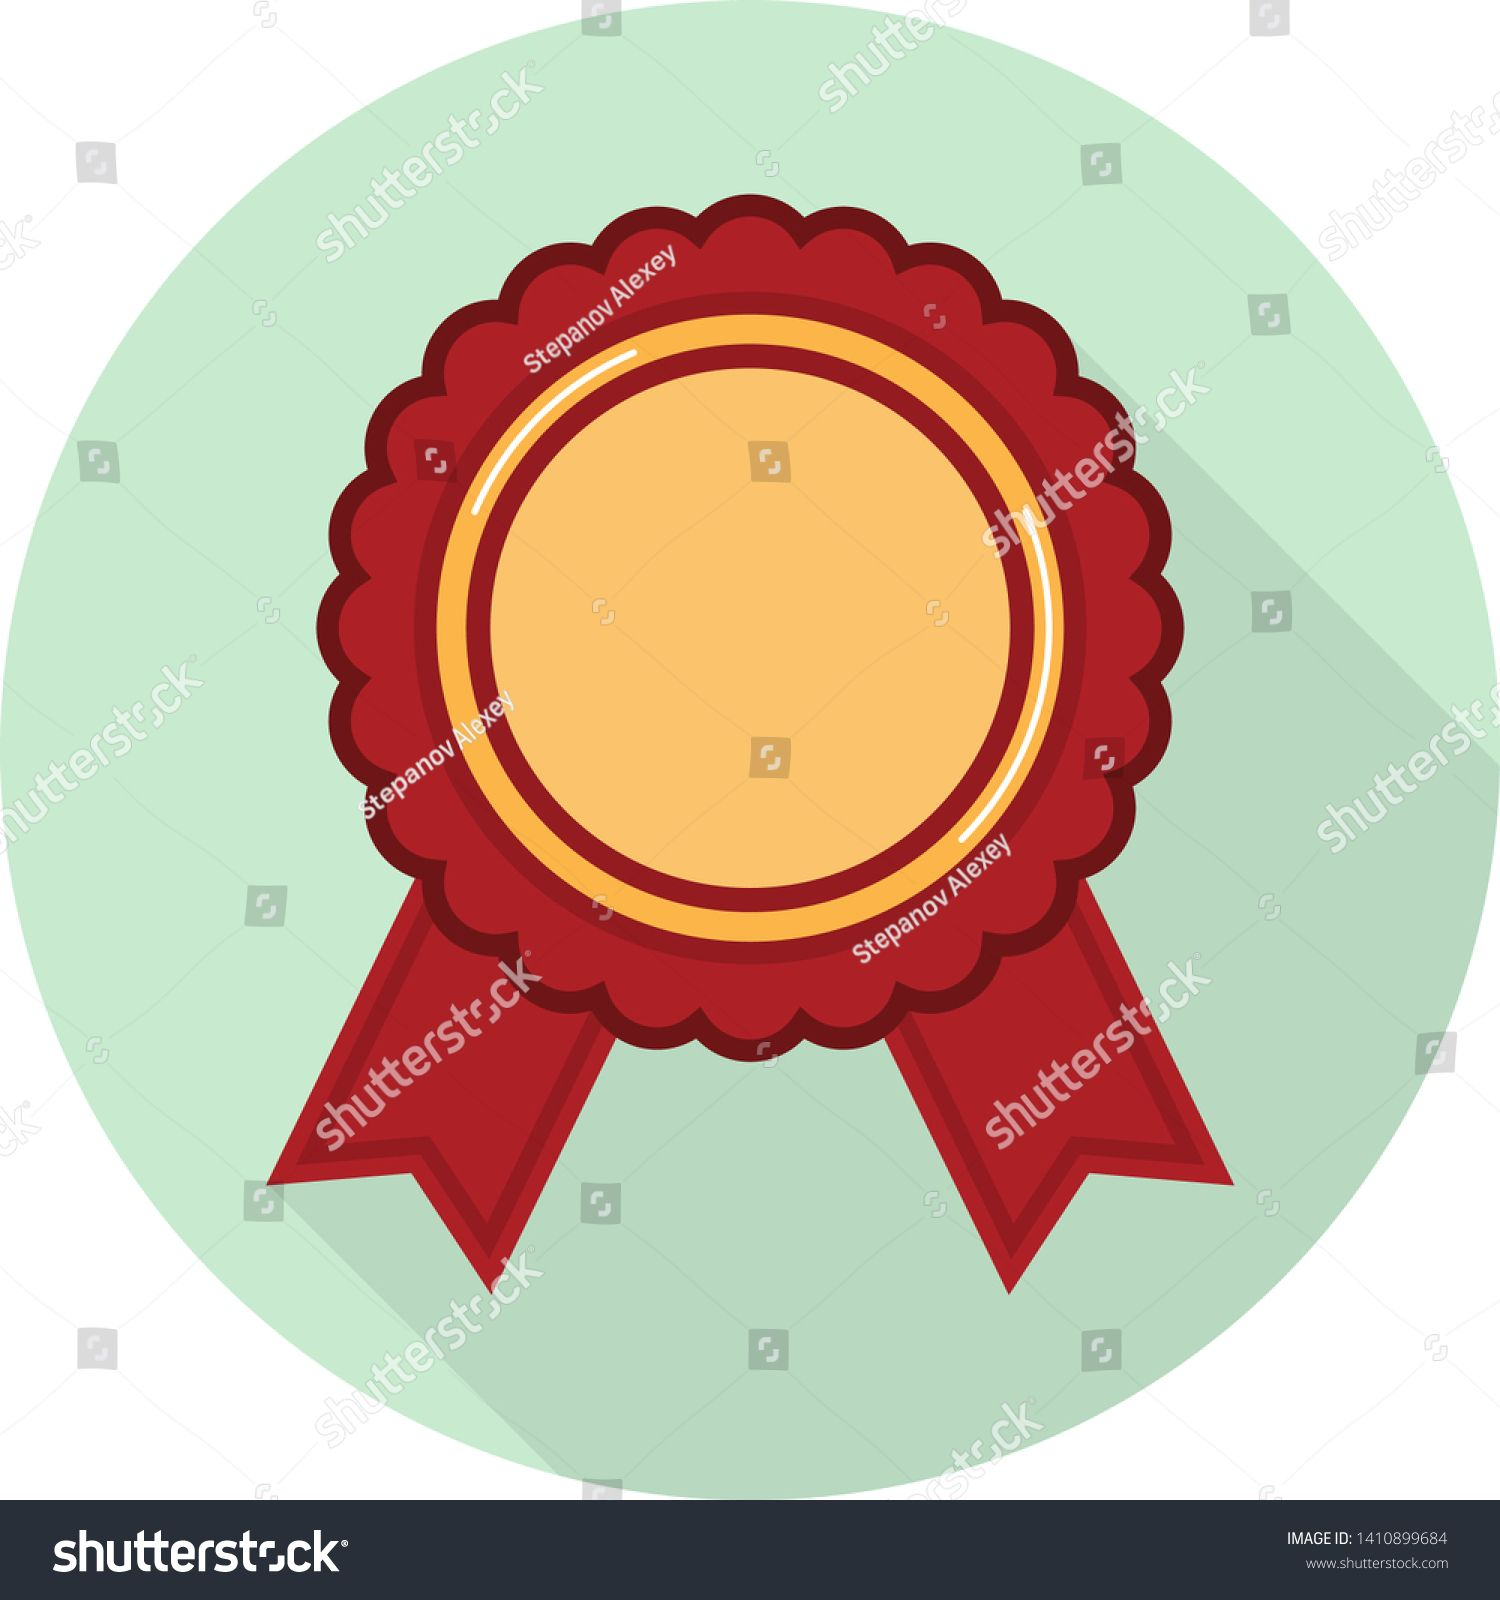 flat icon of gold medal with red ribbons on green background